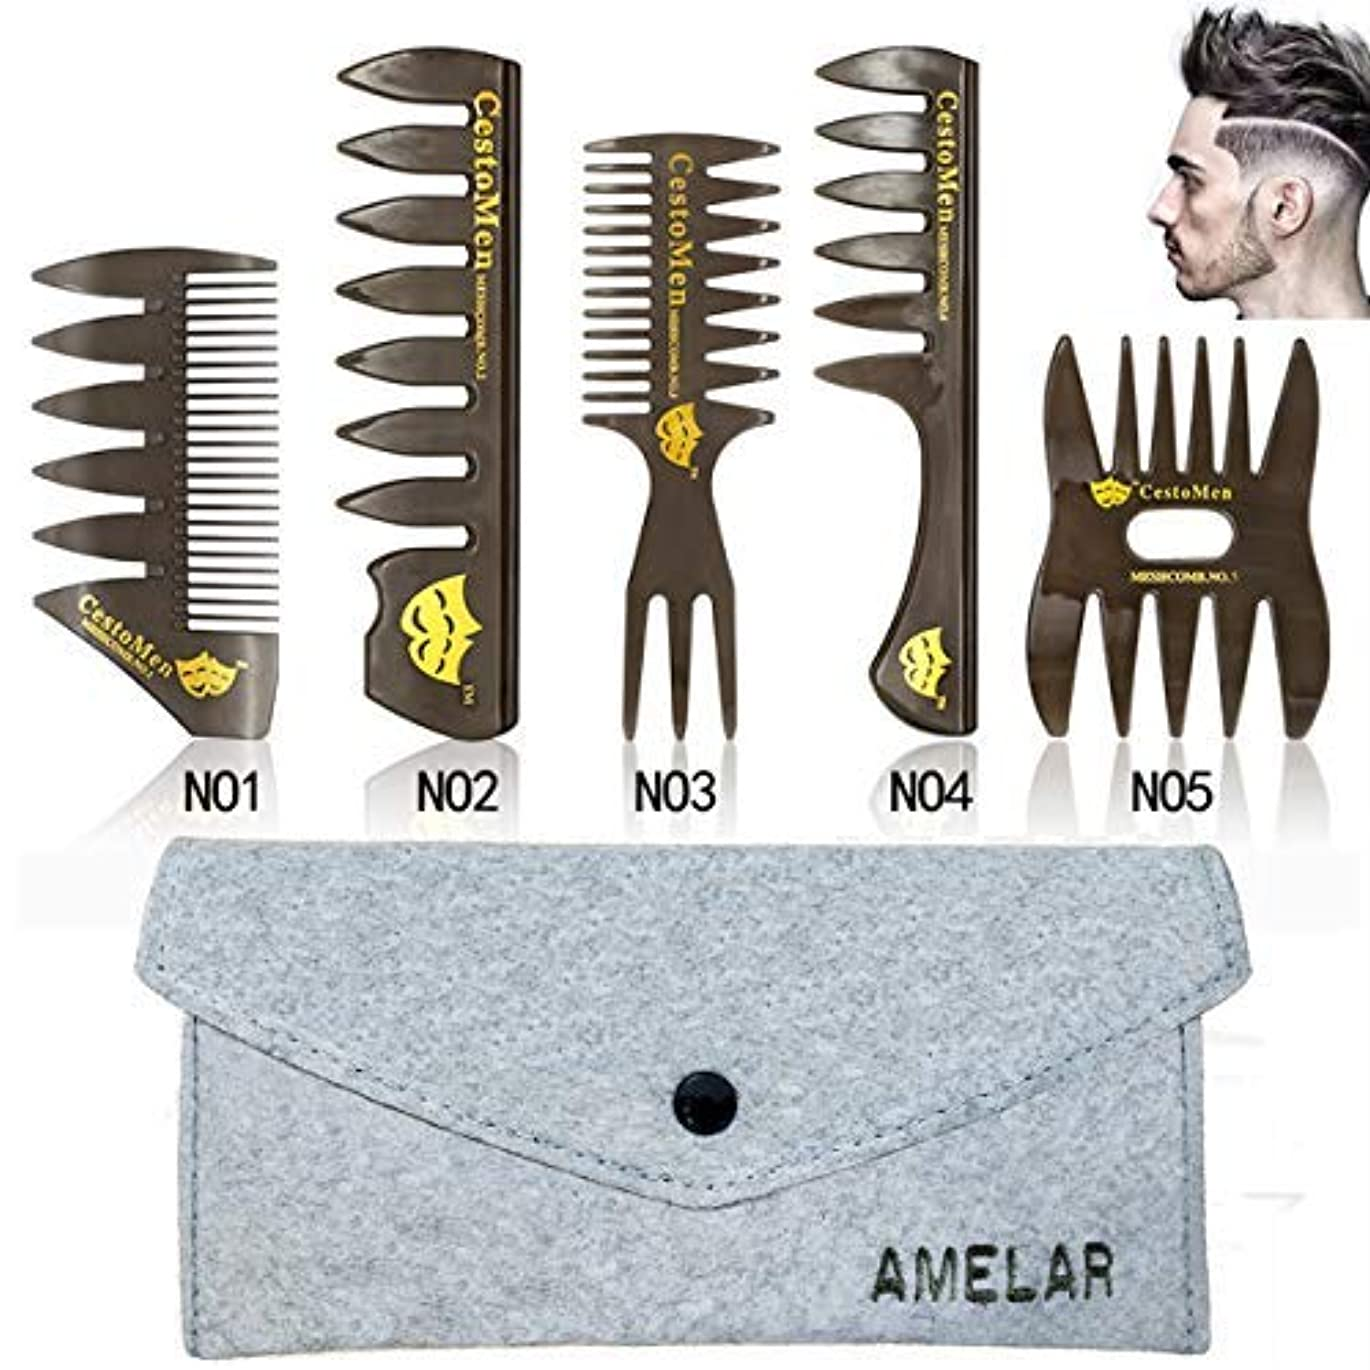 大声でアイザック効果的6 PCS Hair Comb Styling Set Barber Hairstylist Accessories,Professional Shaping & Wet Pick Barber Brush Tools, Anti-Static Hair Brush for Men Boys [並行輸入品]